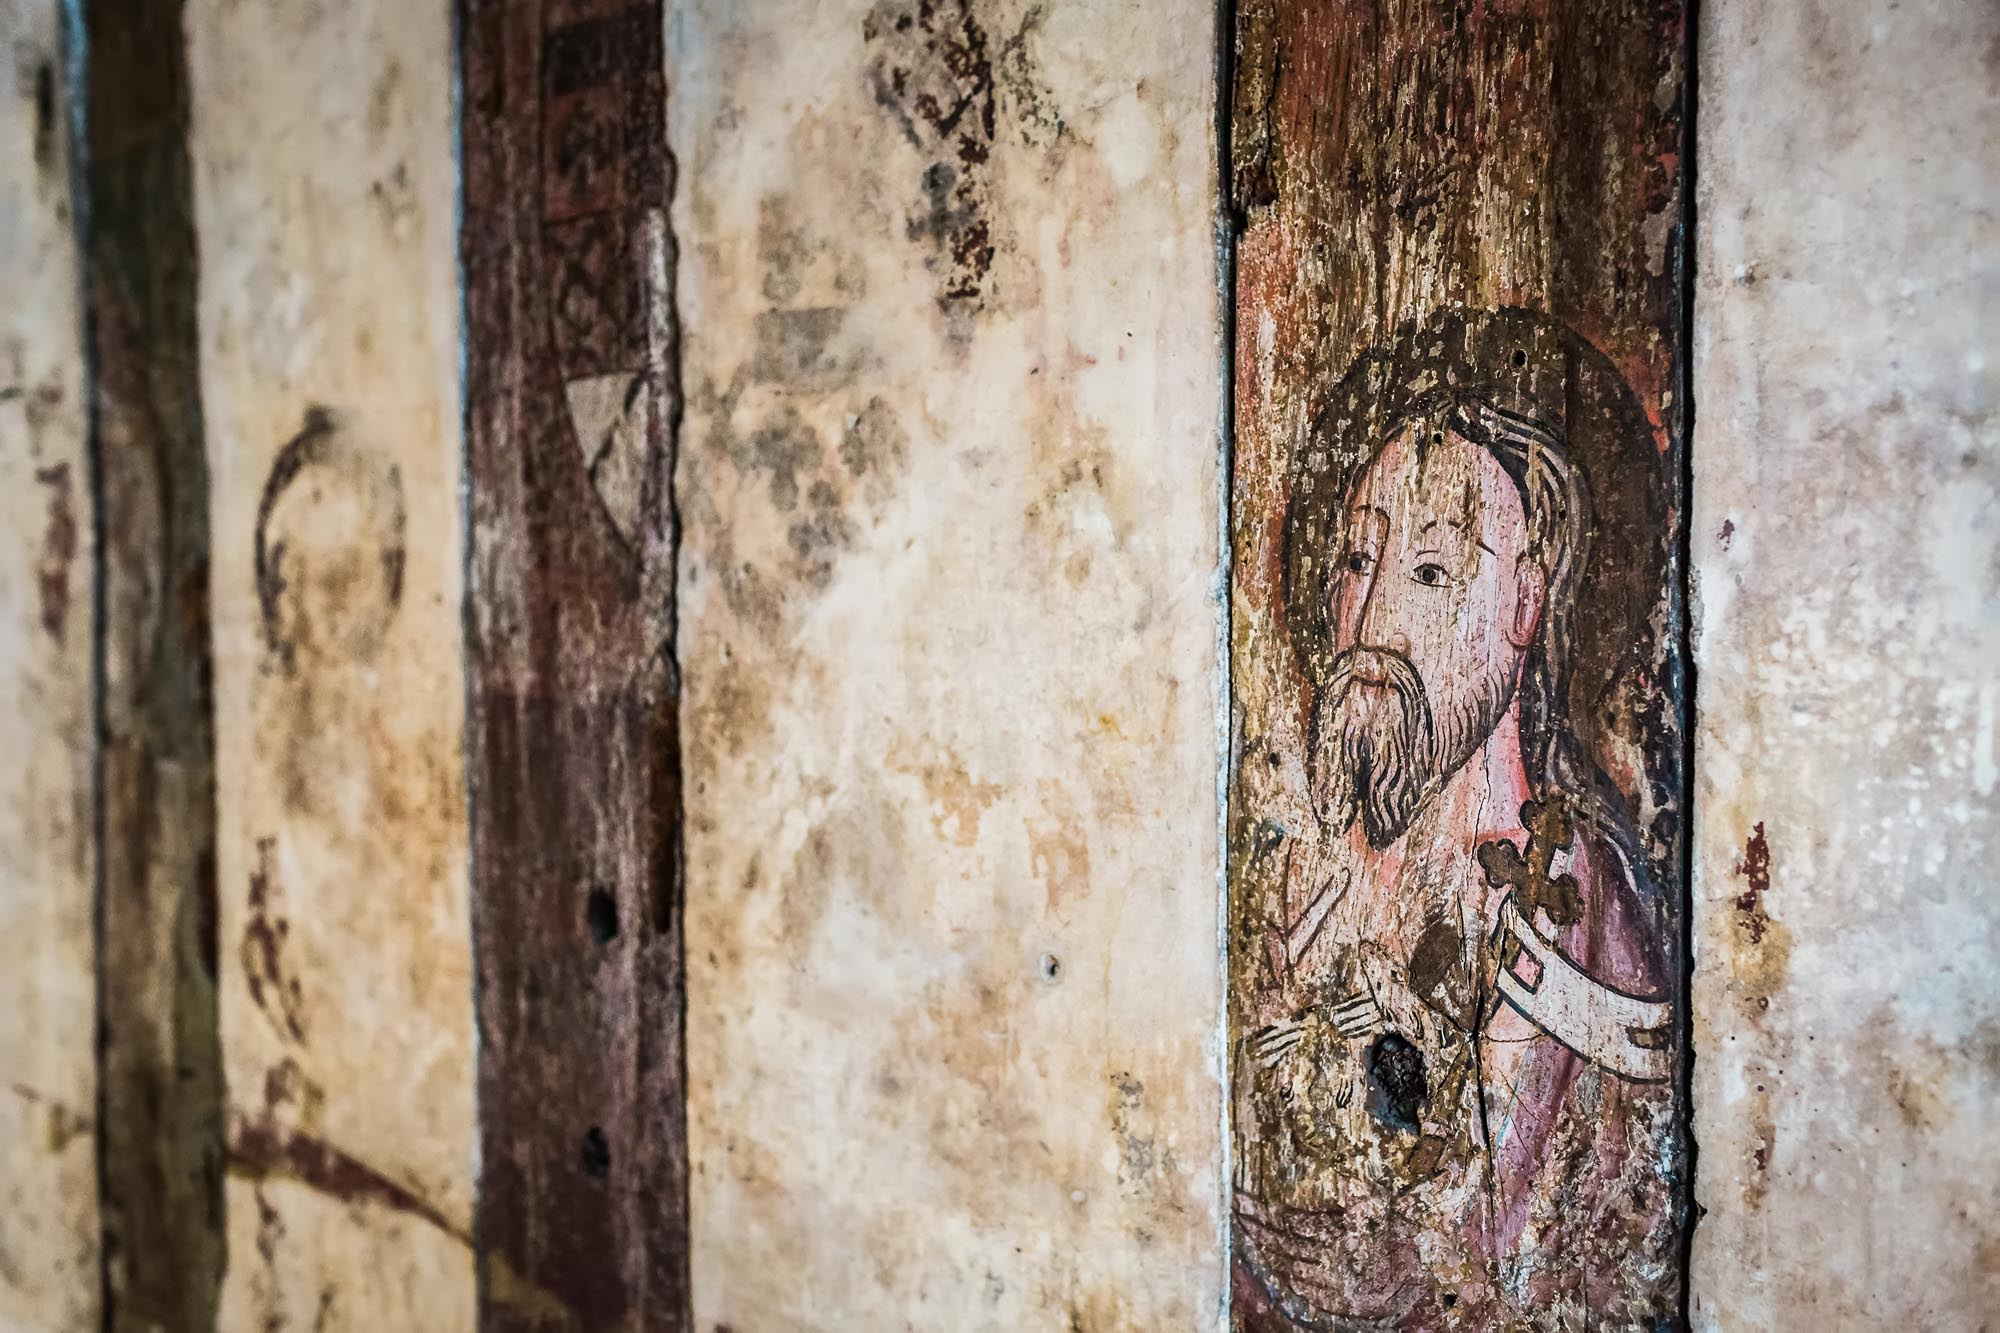 a photo of a painting on wooden beam of the bearded figure of John the Baptist